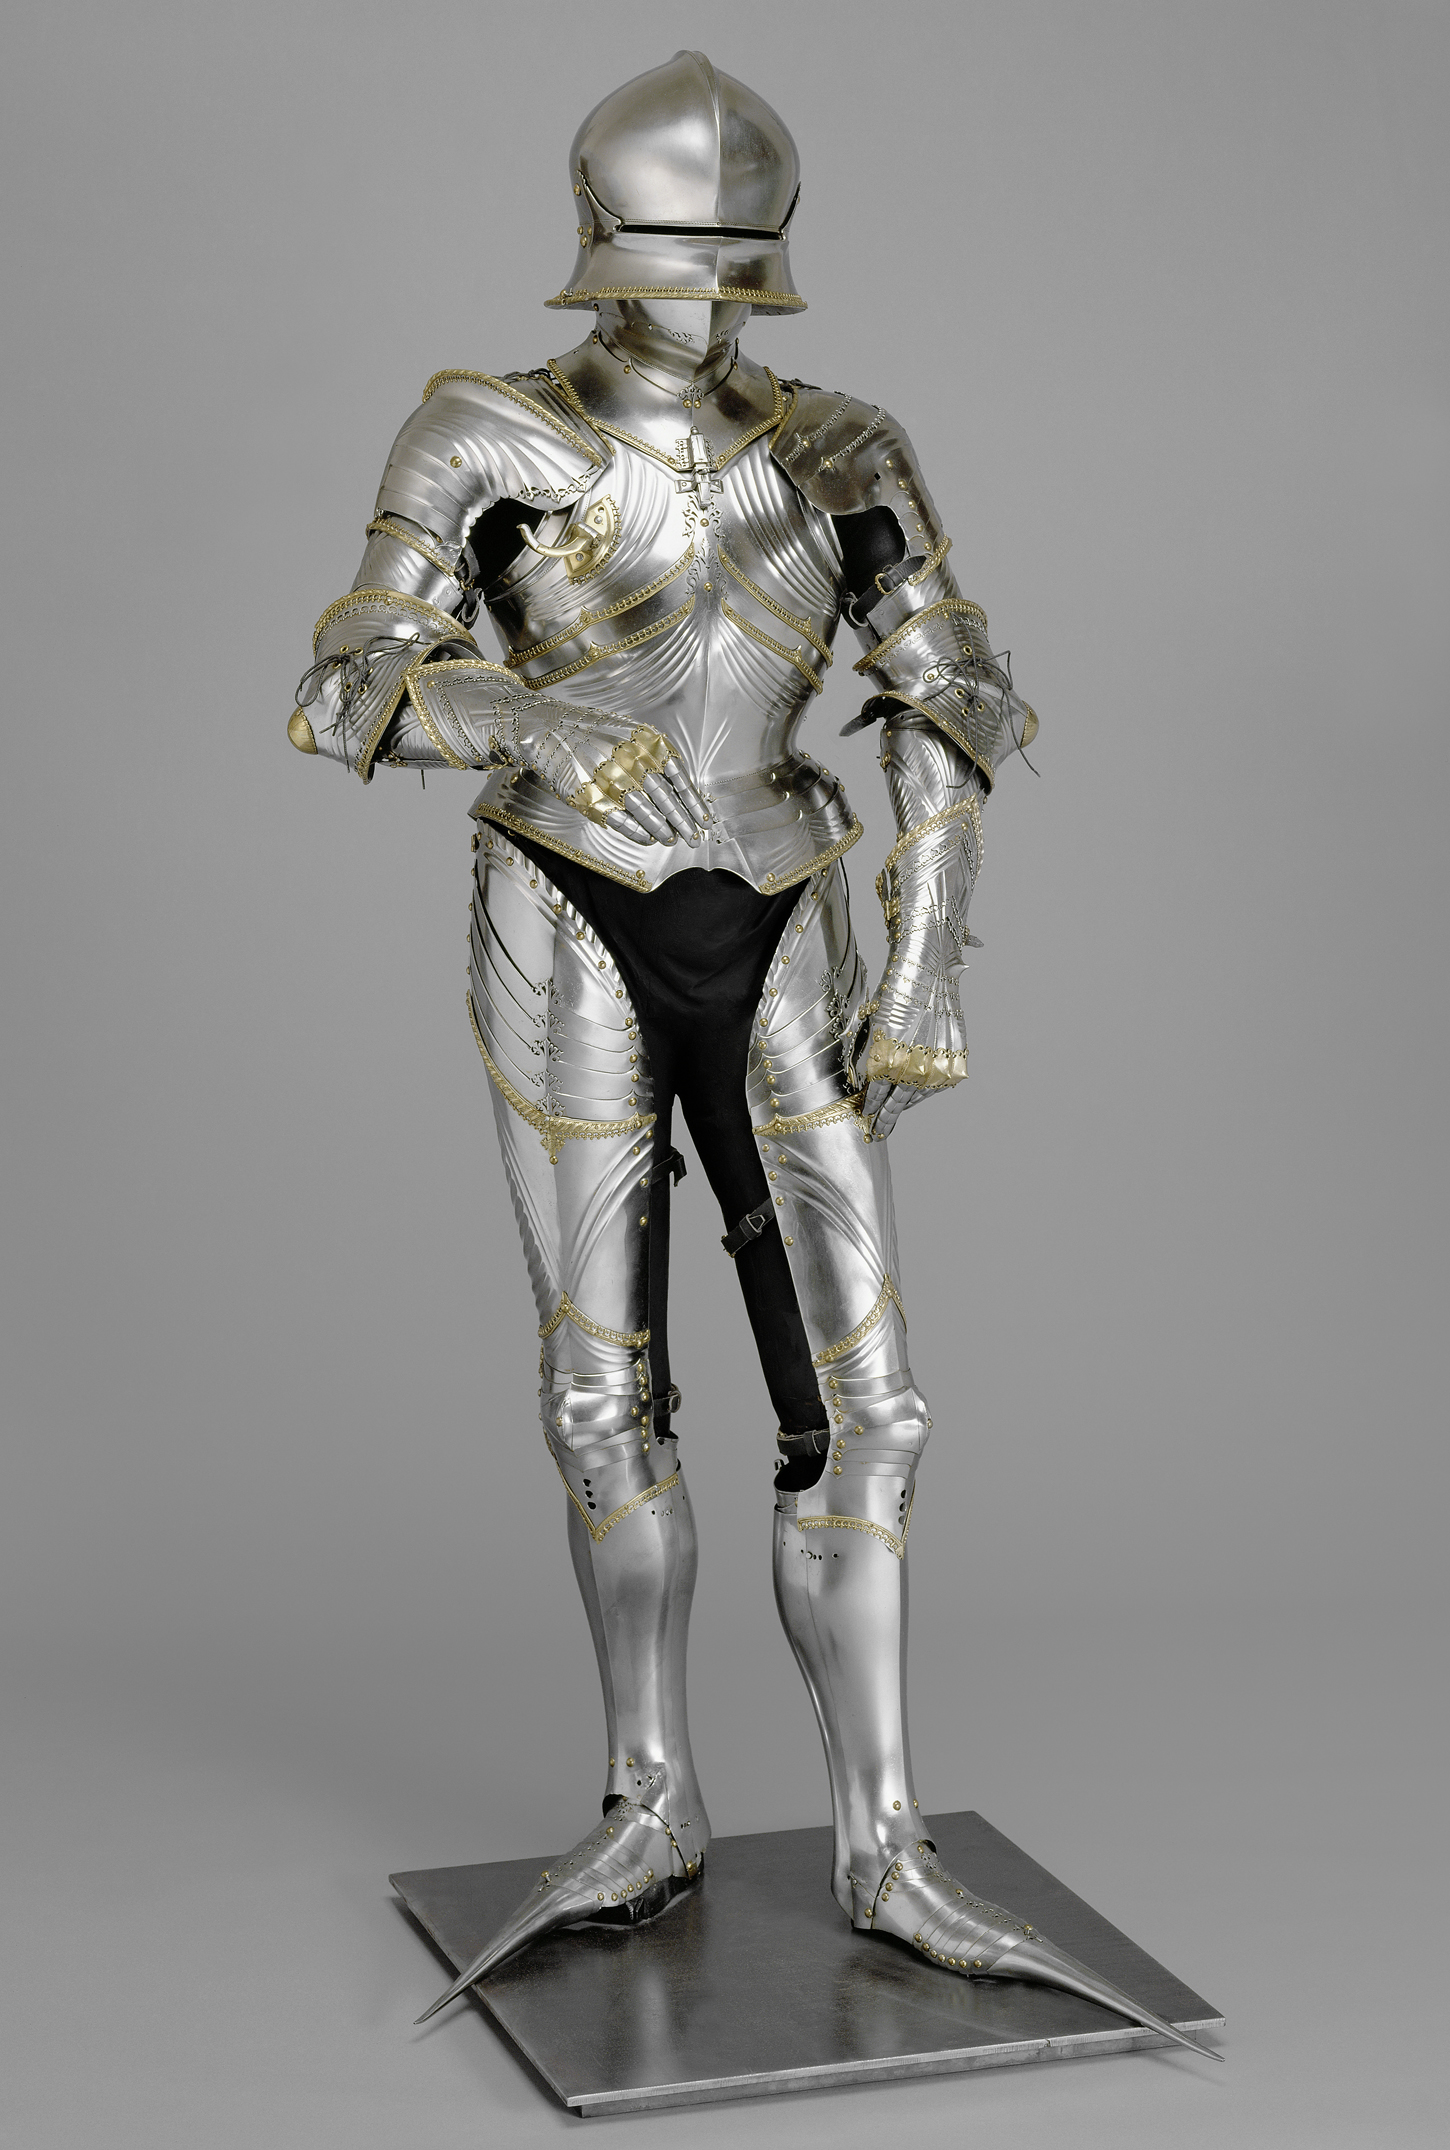 Collection of Arms and Armor Vienna, Lorenz Helmschmied, Cuirass of Maximilian I, Augsburg, c. 1485 ...